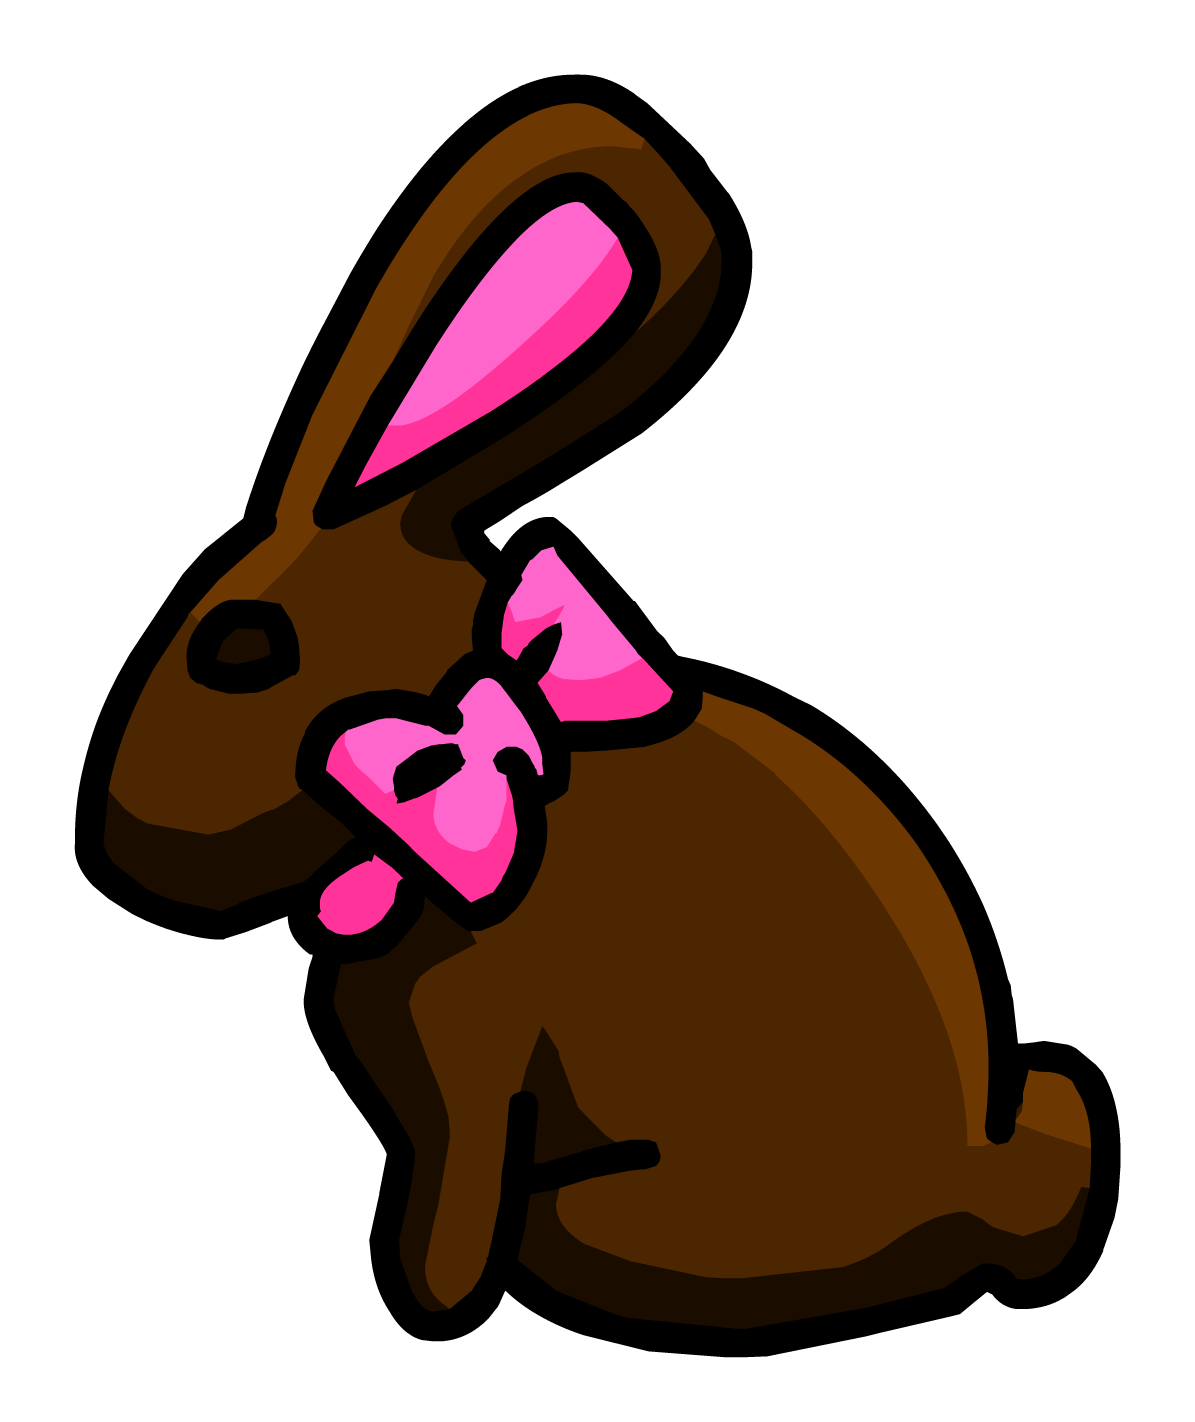 Chocolate bunny pin club. Clipart penquin easter